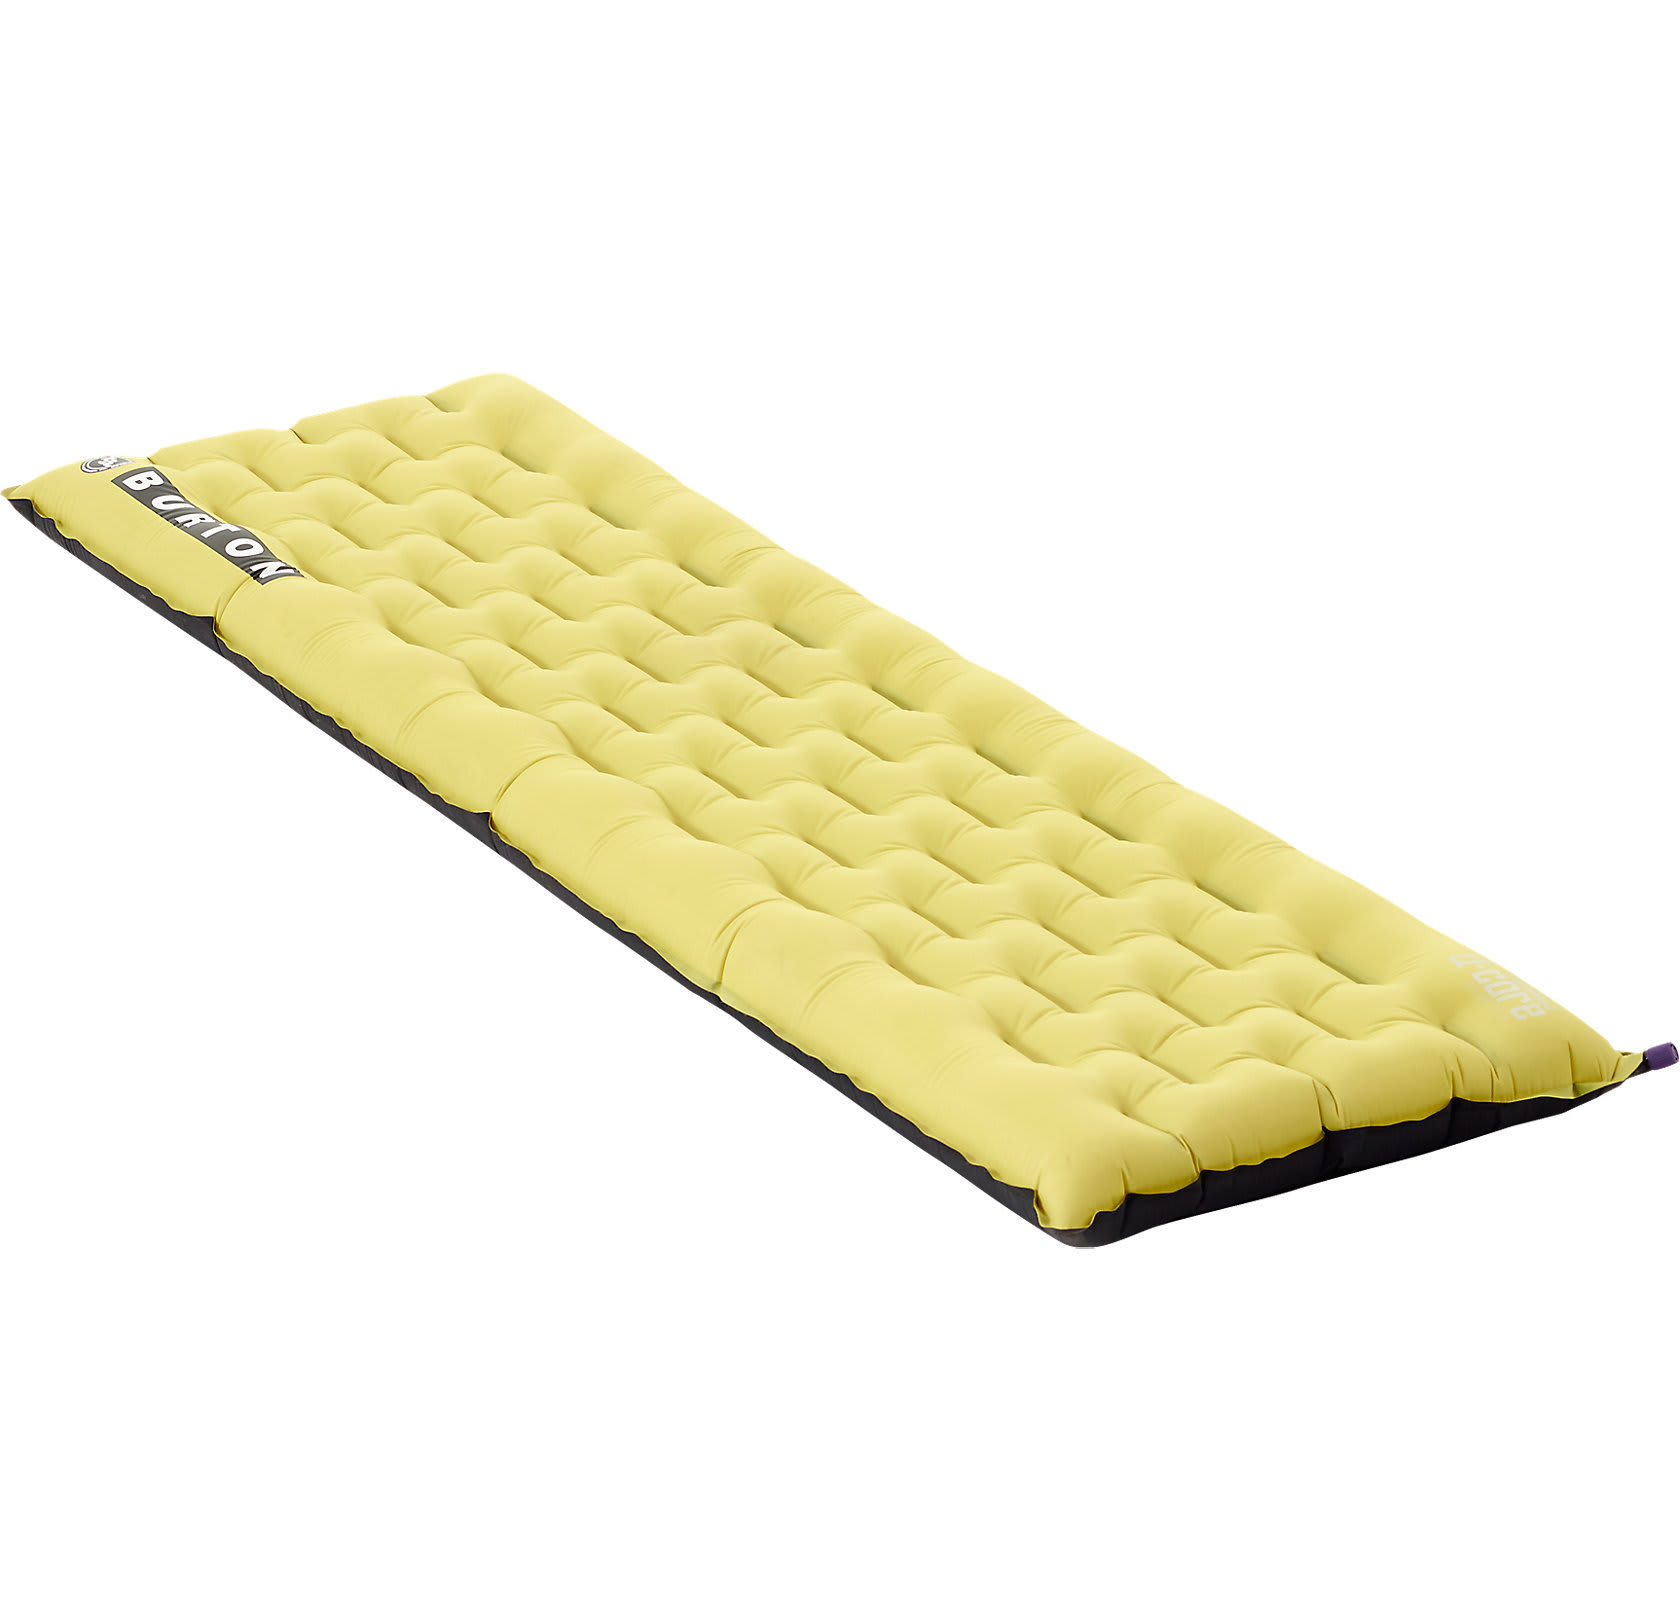 Air Beds & Sleeping Pads